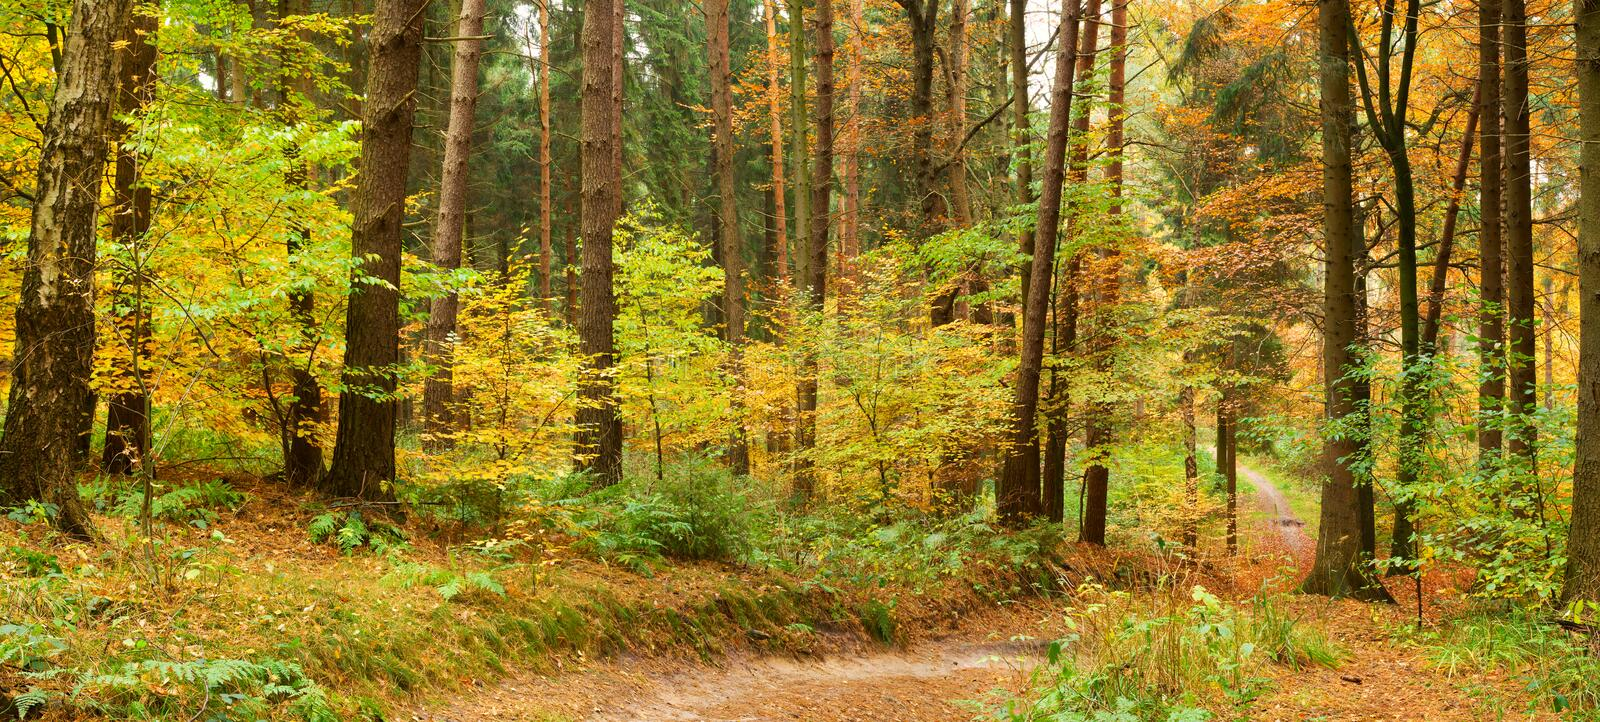 Path in mixed autumn forest royalty free stock photos